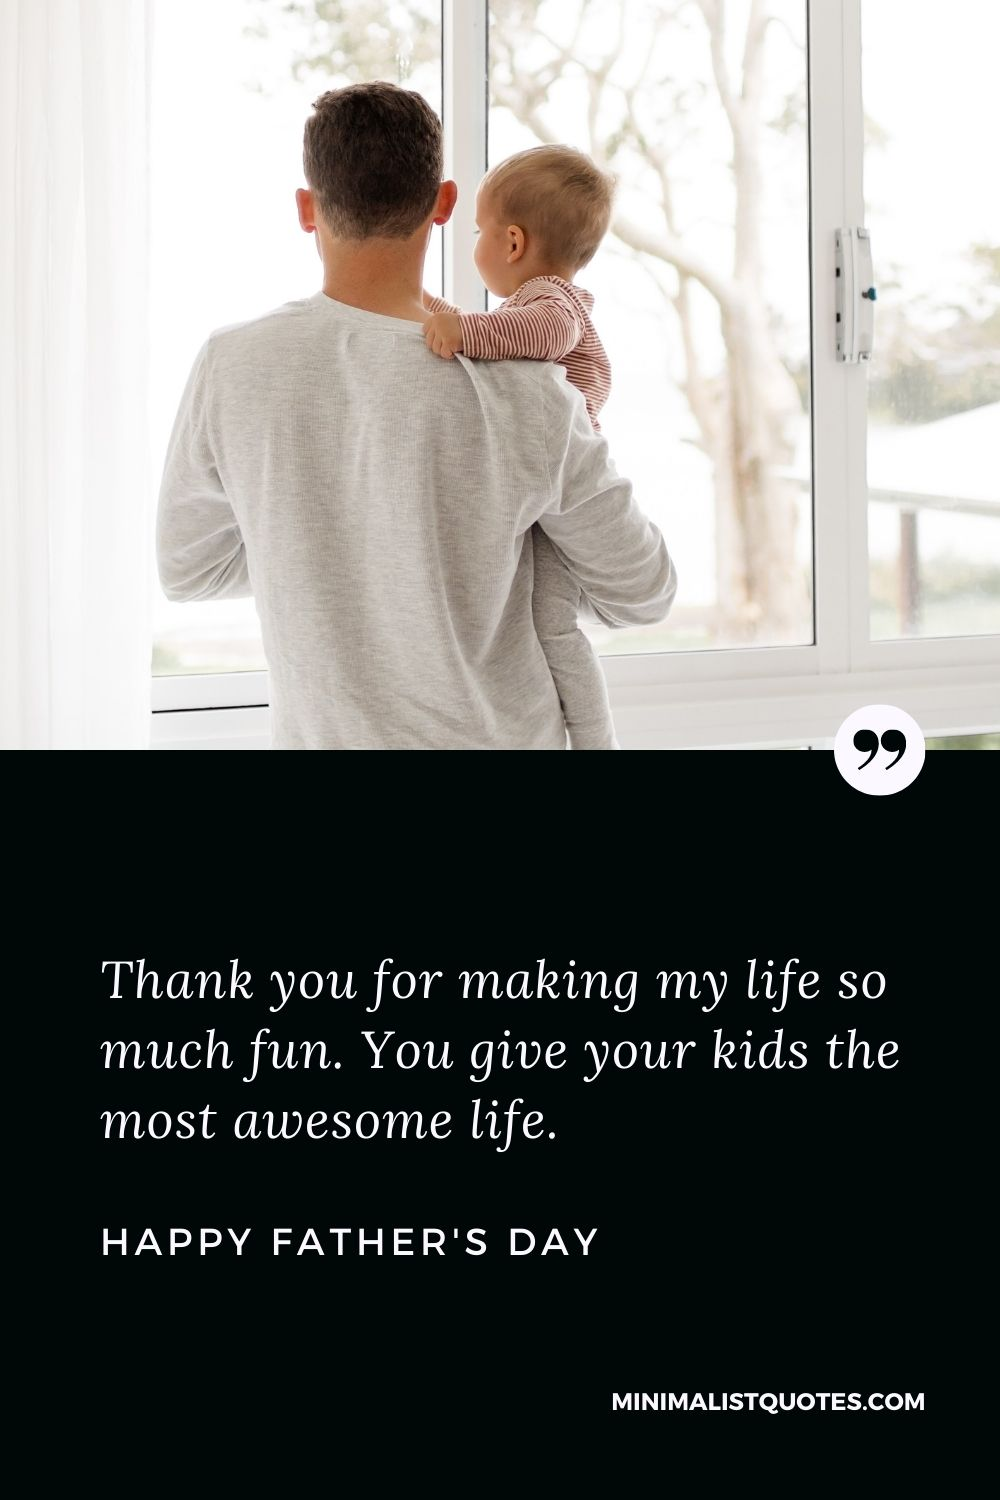 Father's Day wish, message & quote with HD image: Thank you for making my life so much fun. You give your kids the most awesome life. Happy Father's Day!